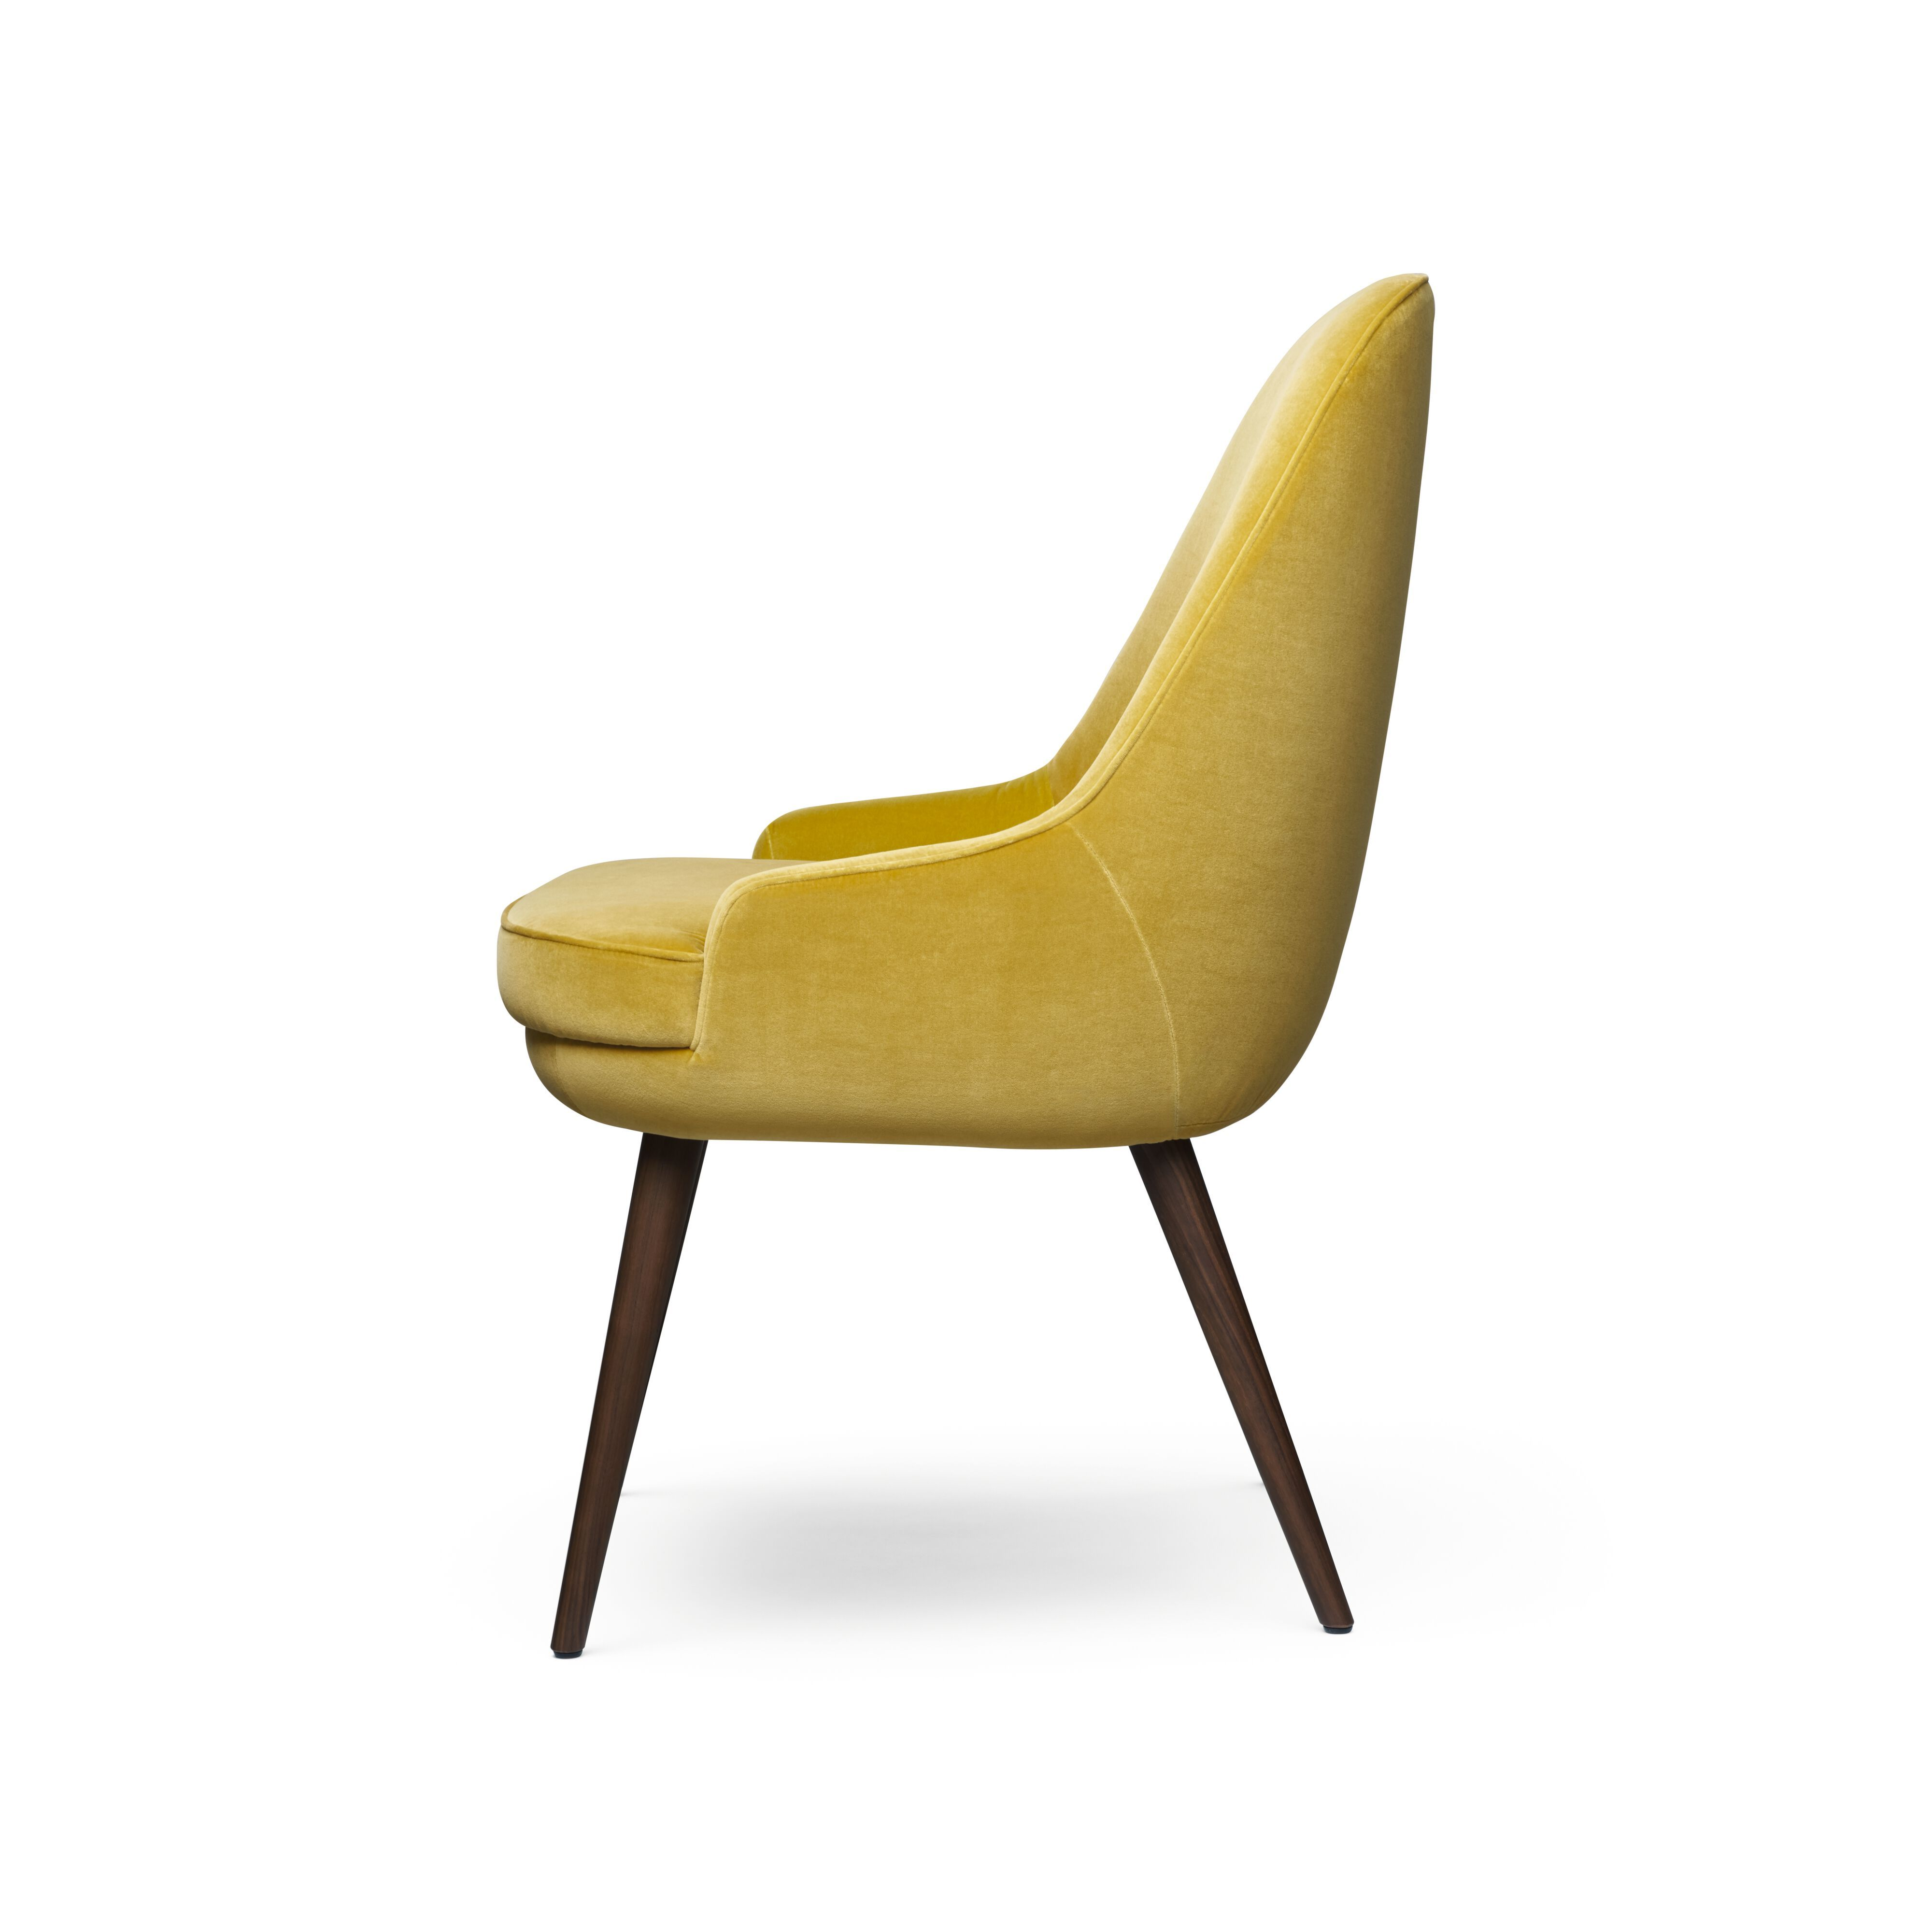 05_WK-375_Chair-Modell-1375-Dining-Chair-0006-H.tif